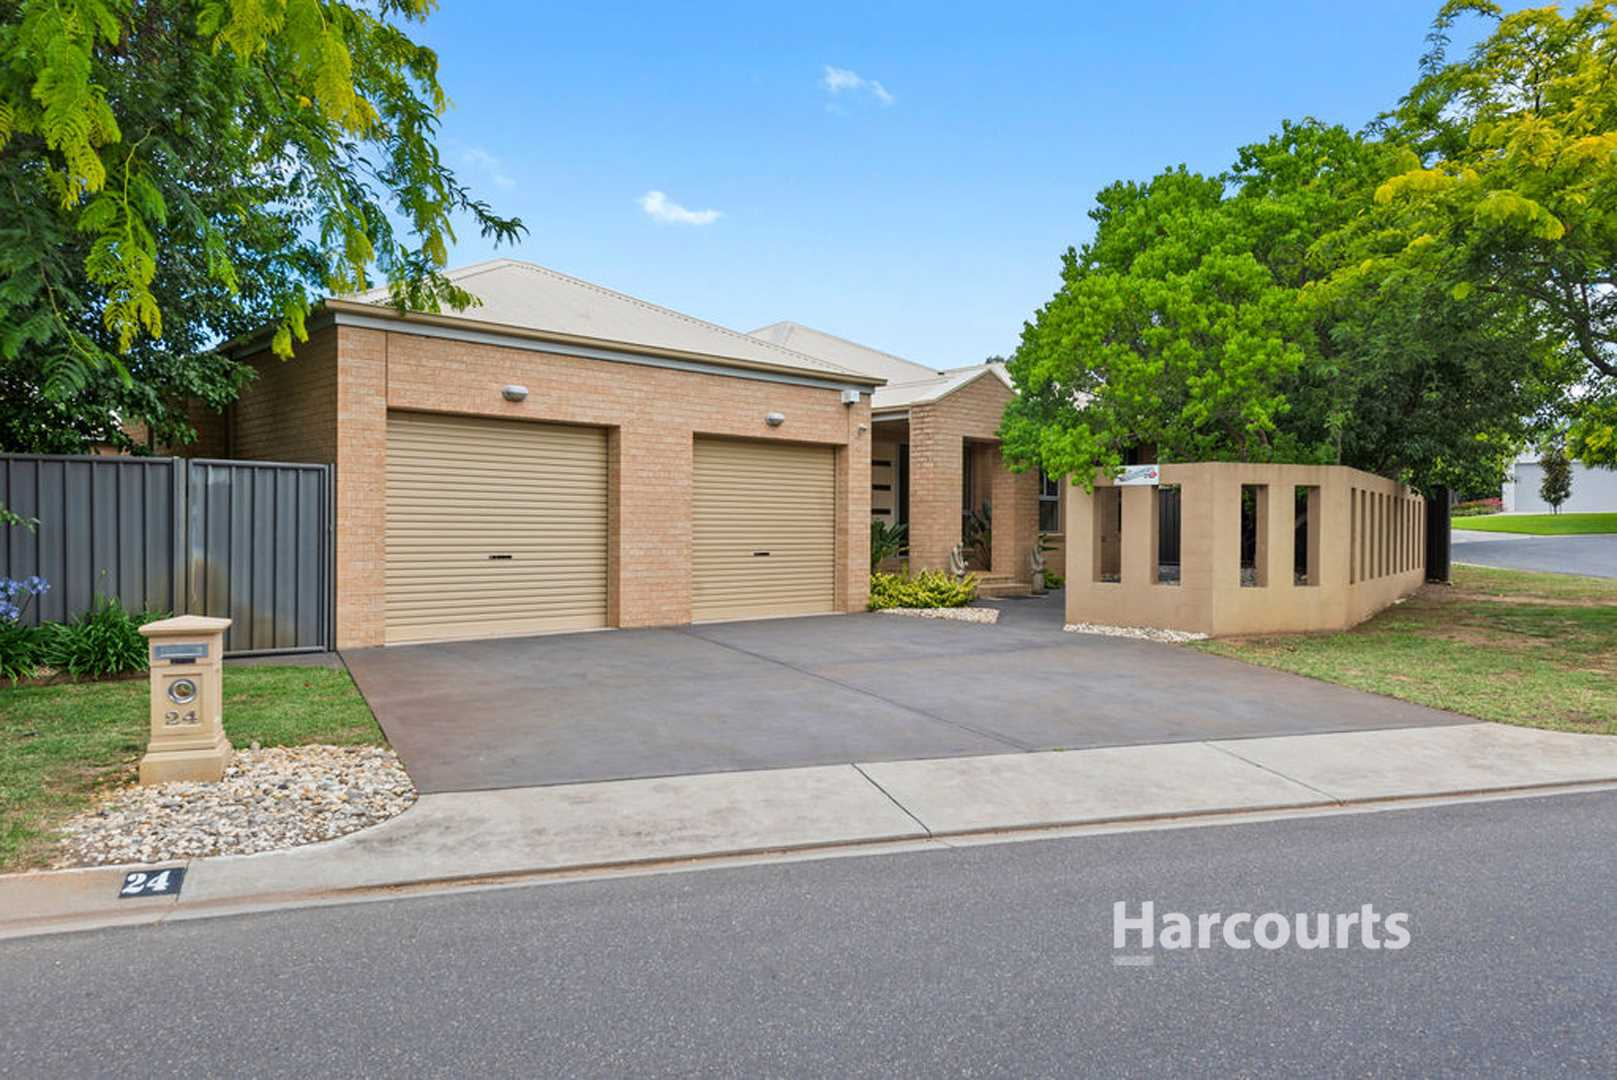 The very best of Rural Outlook Residential living - 1345m2